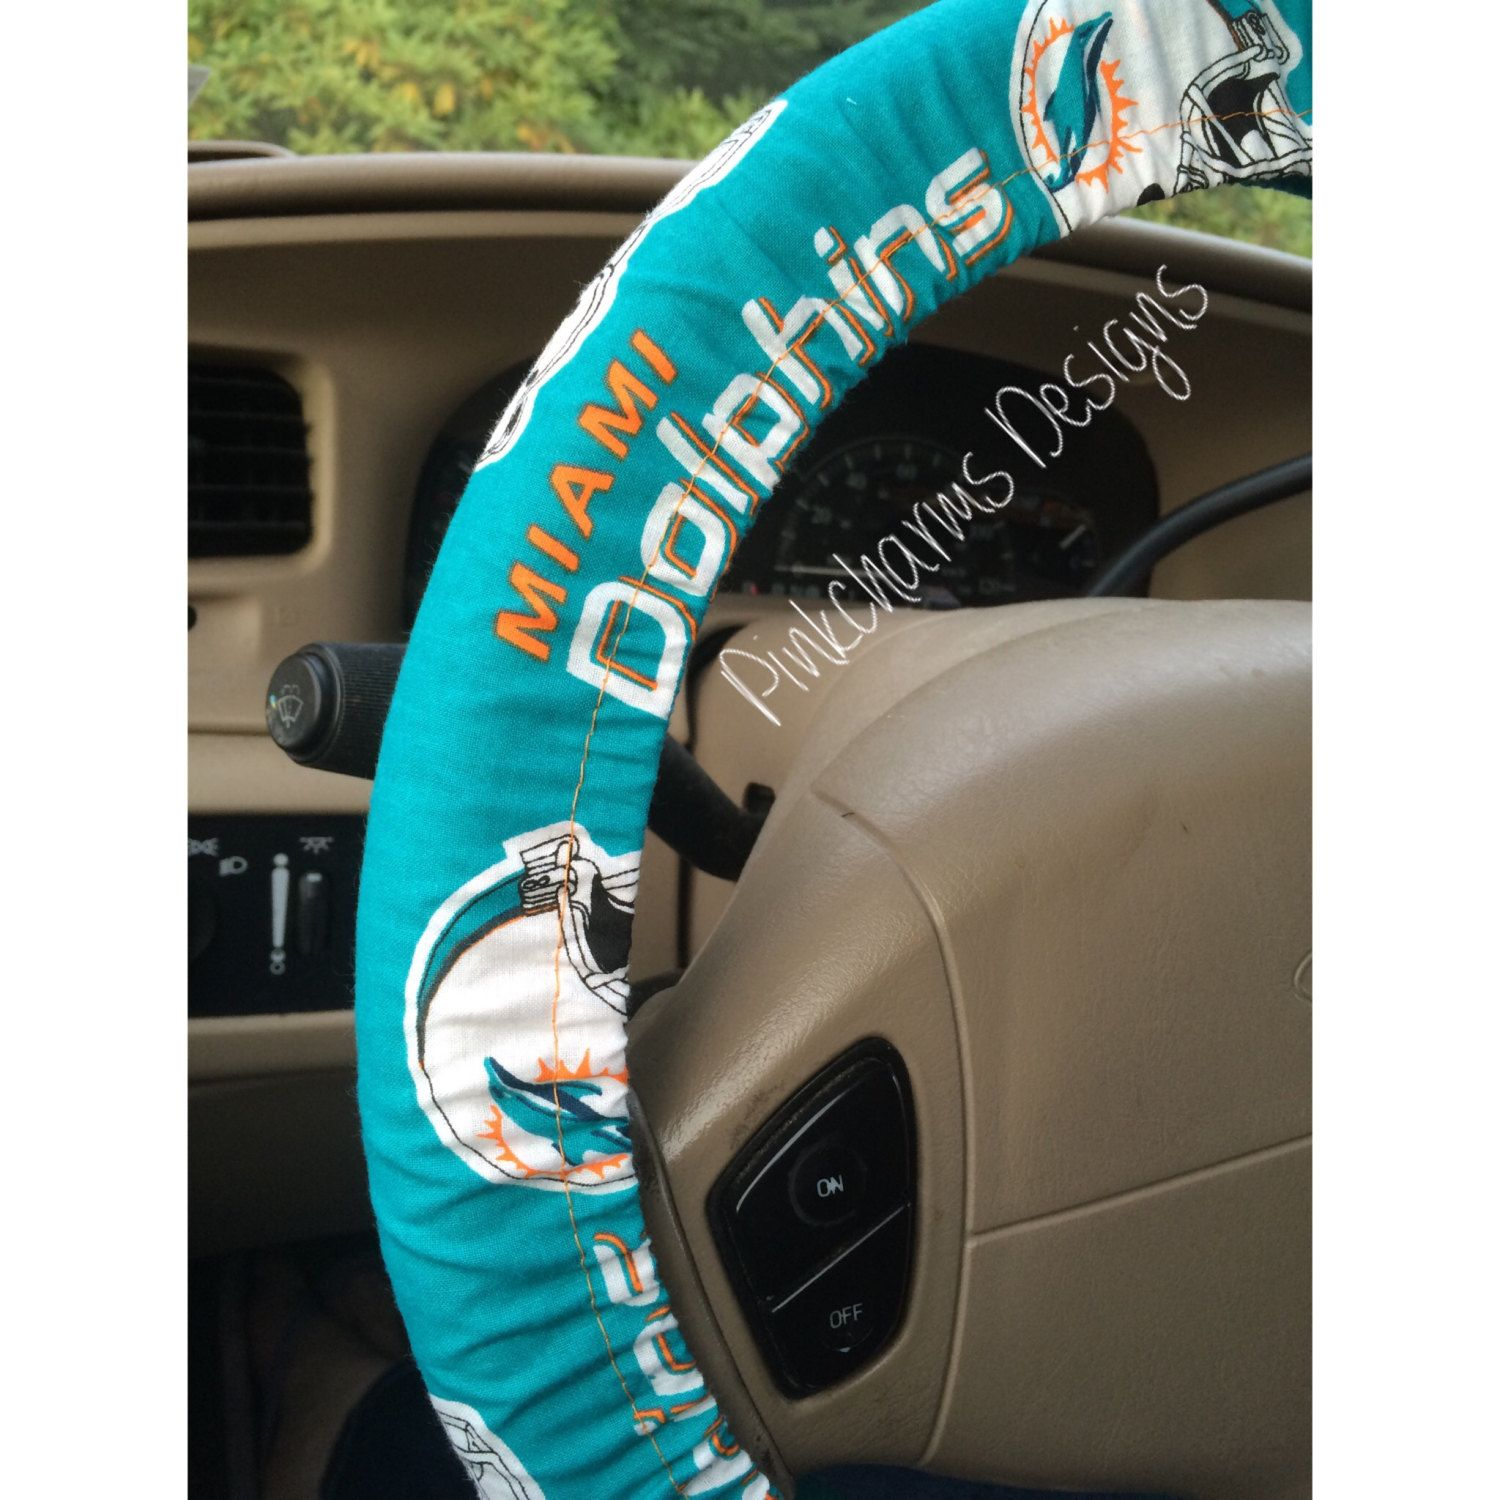 Incredible Steering Wheel Cover In Nfl Miami Dolphins Print Cotton Fits Pabps2019 Chair Design Images Pabps2019Com